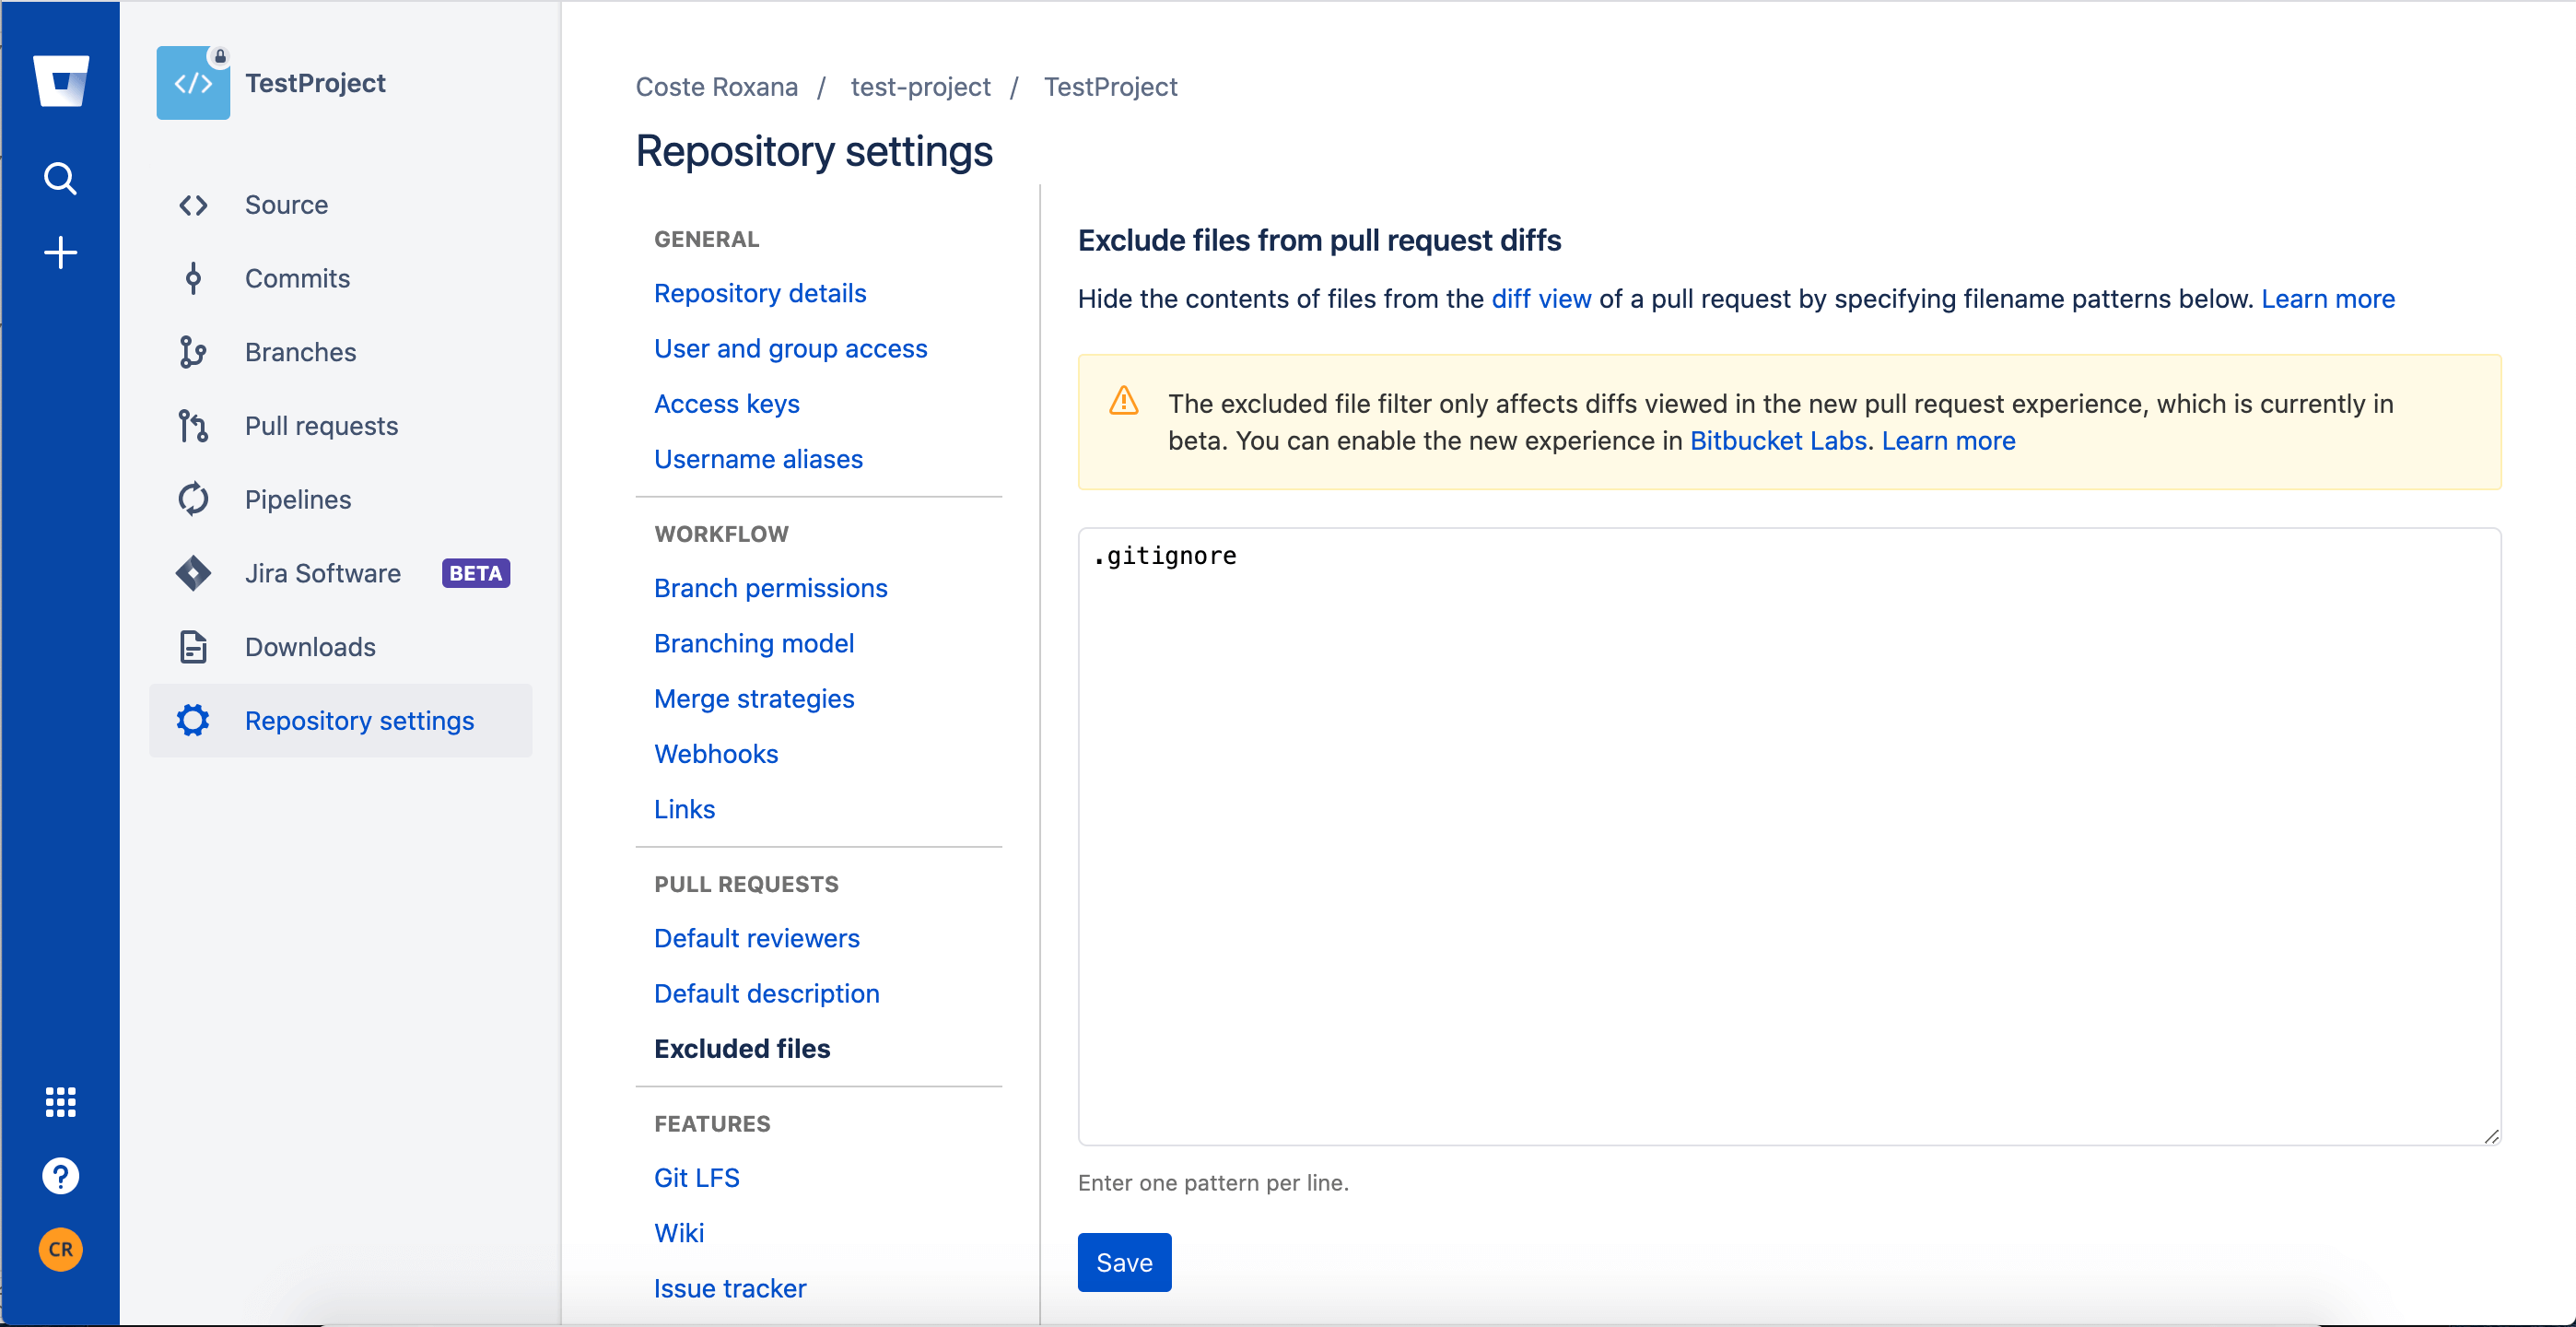 [Cobalt Matters] Trying out the New Bitbucket Features - Excluded files - PR section - Screenshot 2020-04-29 at 10.00.56